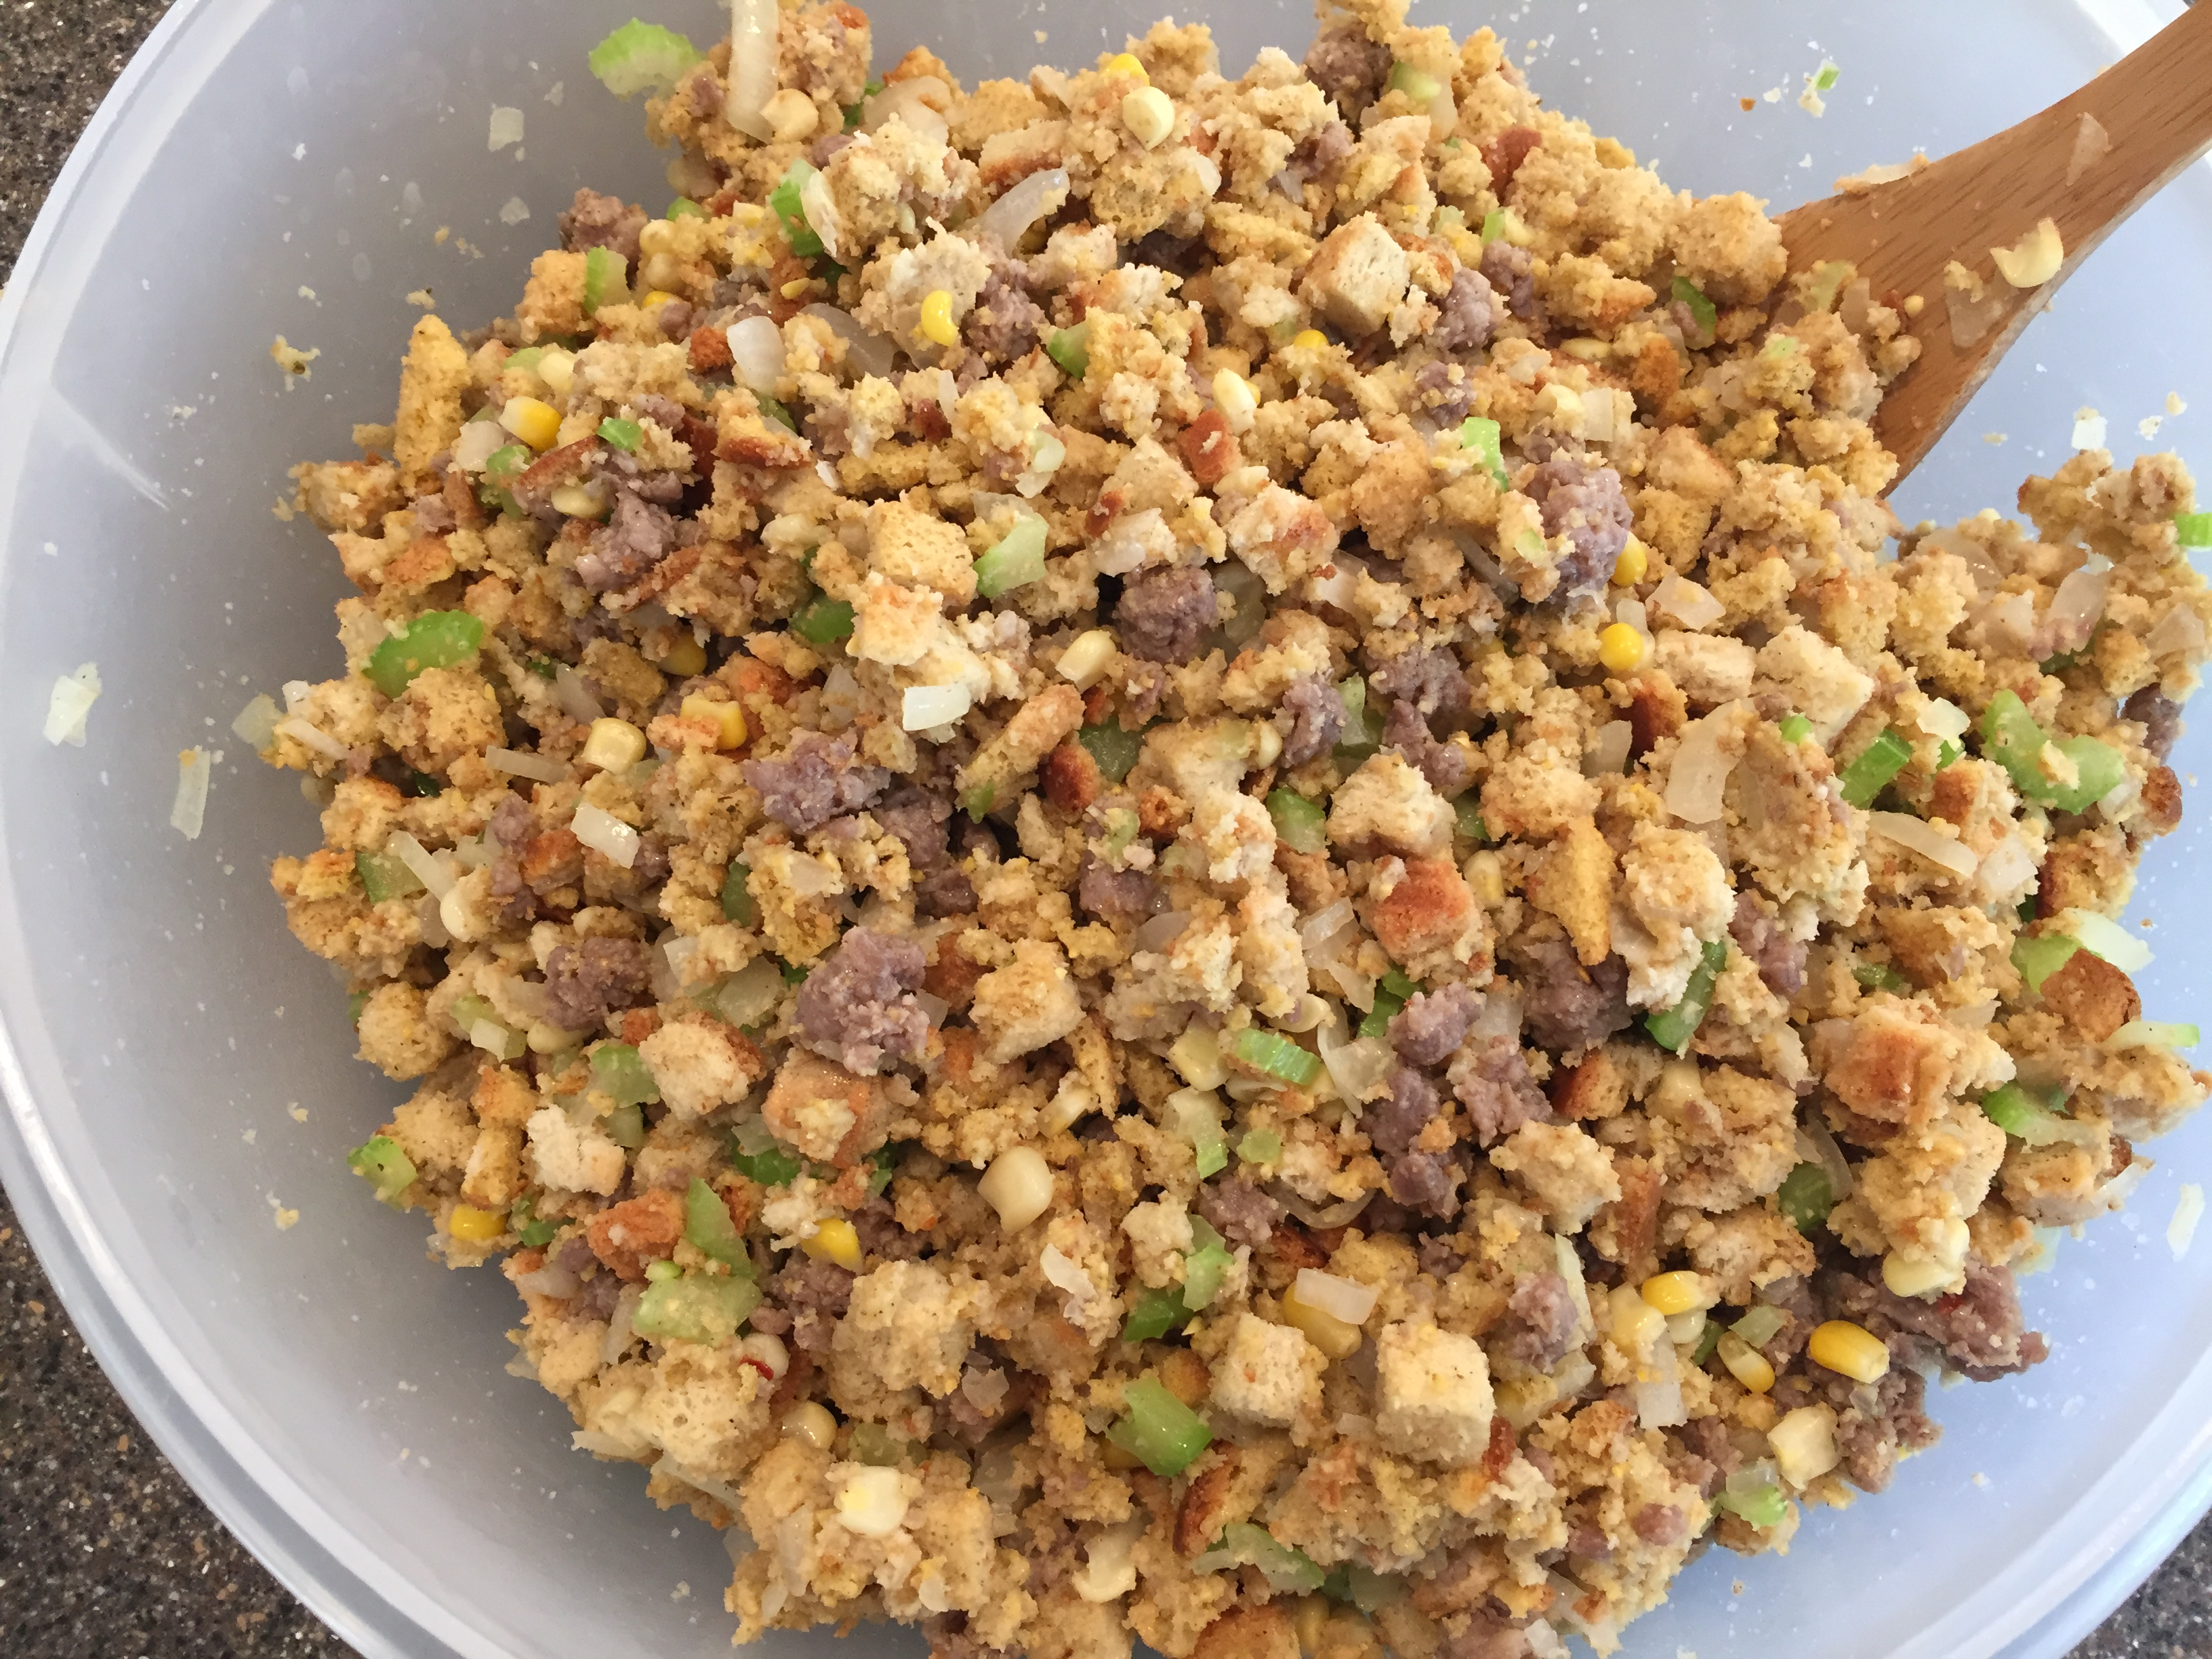 Delicious stuffing recipe with sausage